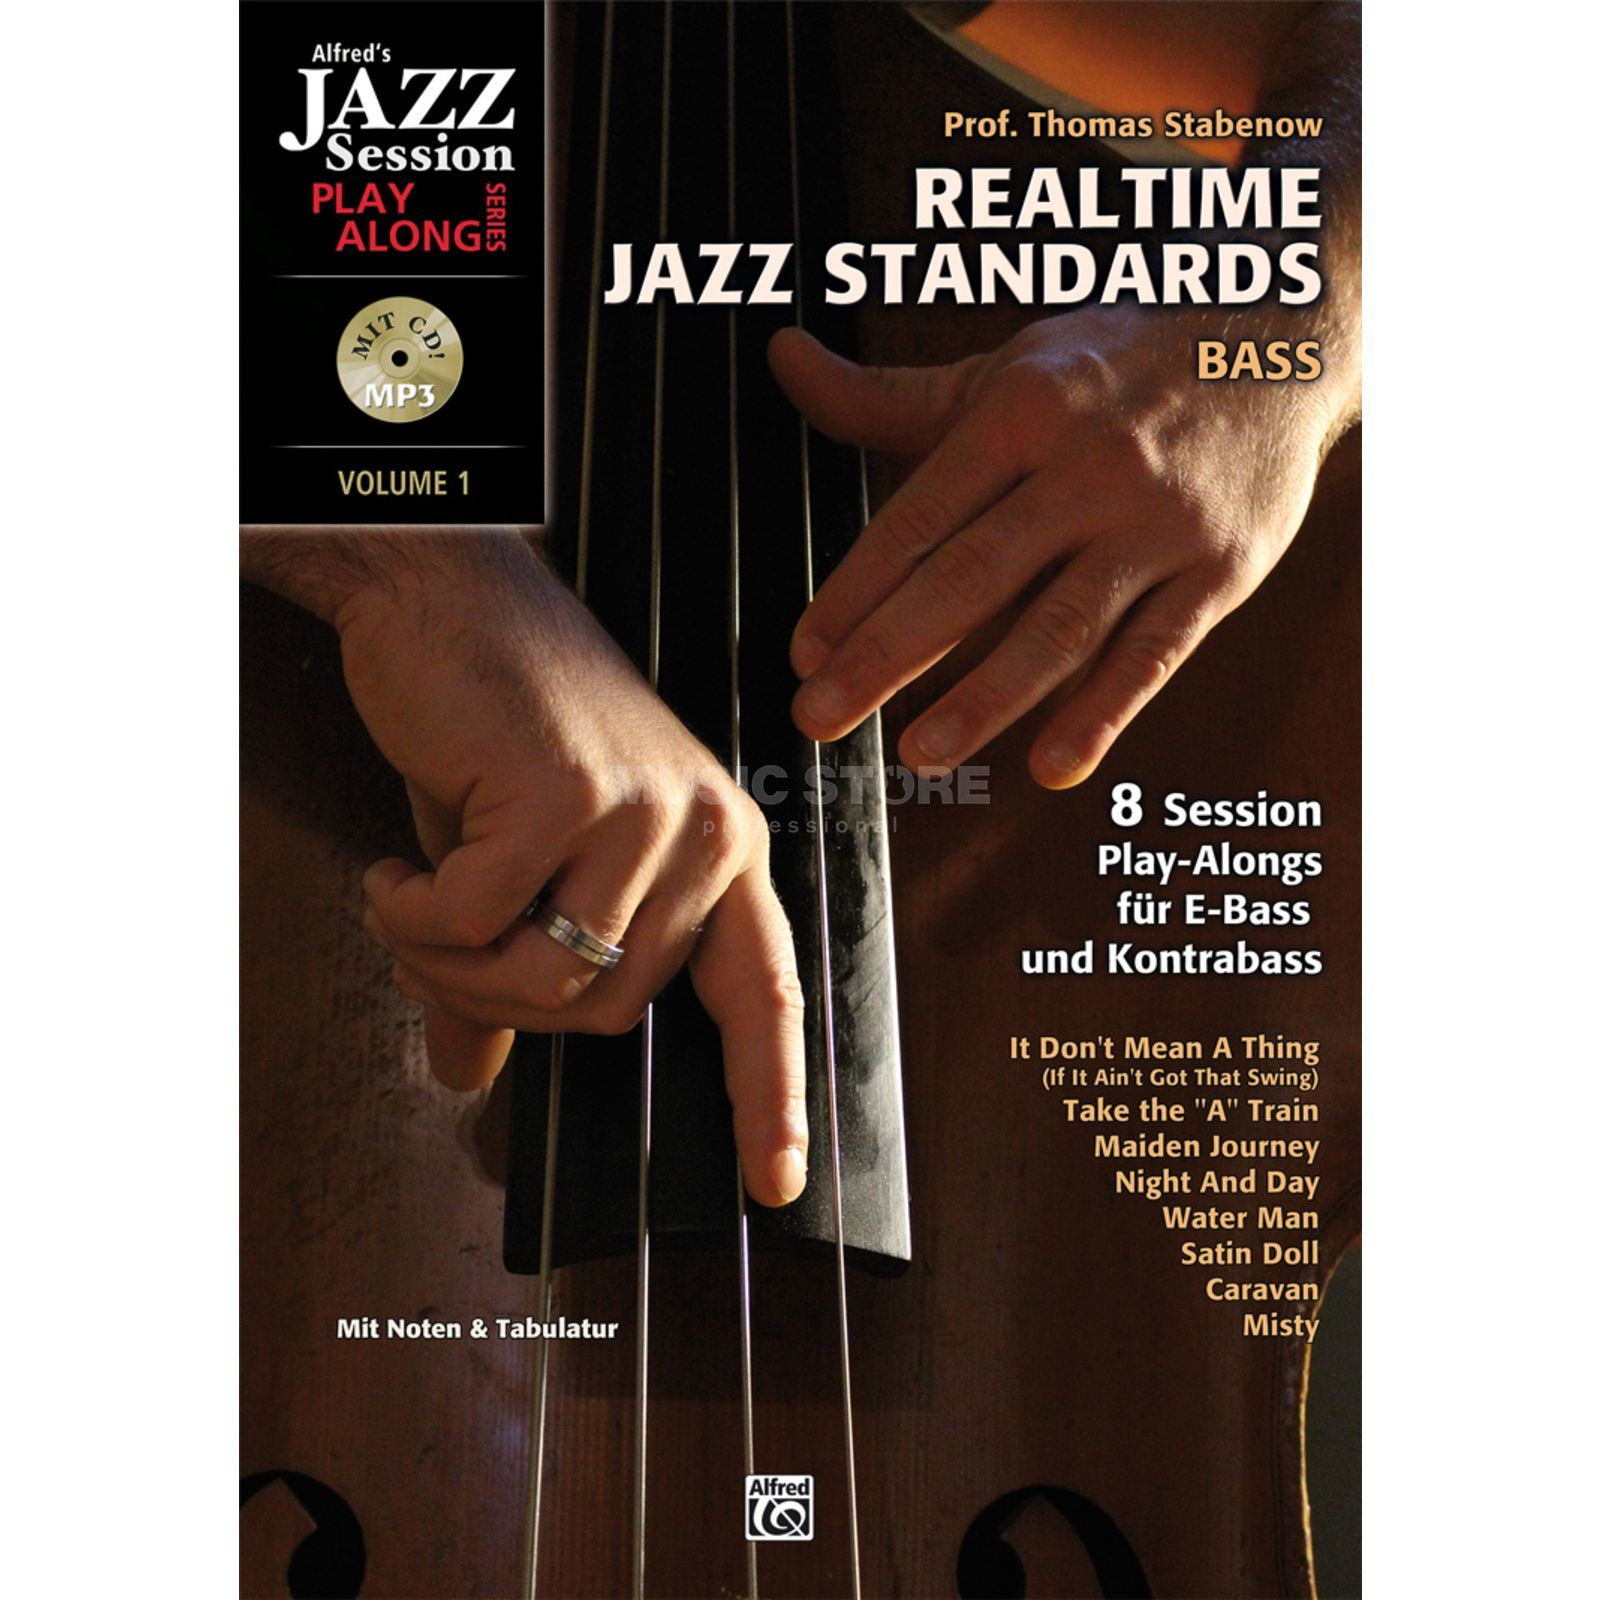 Alfred Music Realtime Jazz Standards Bass Produktbillede